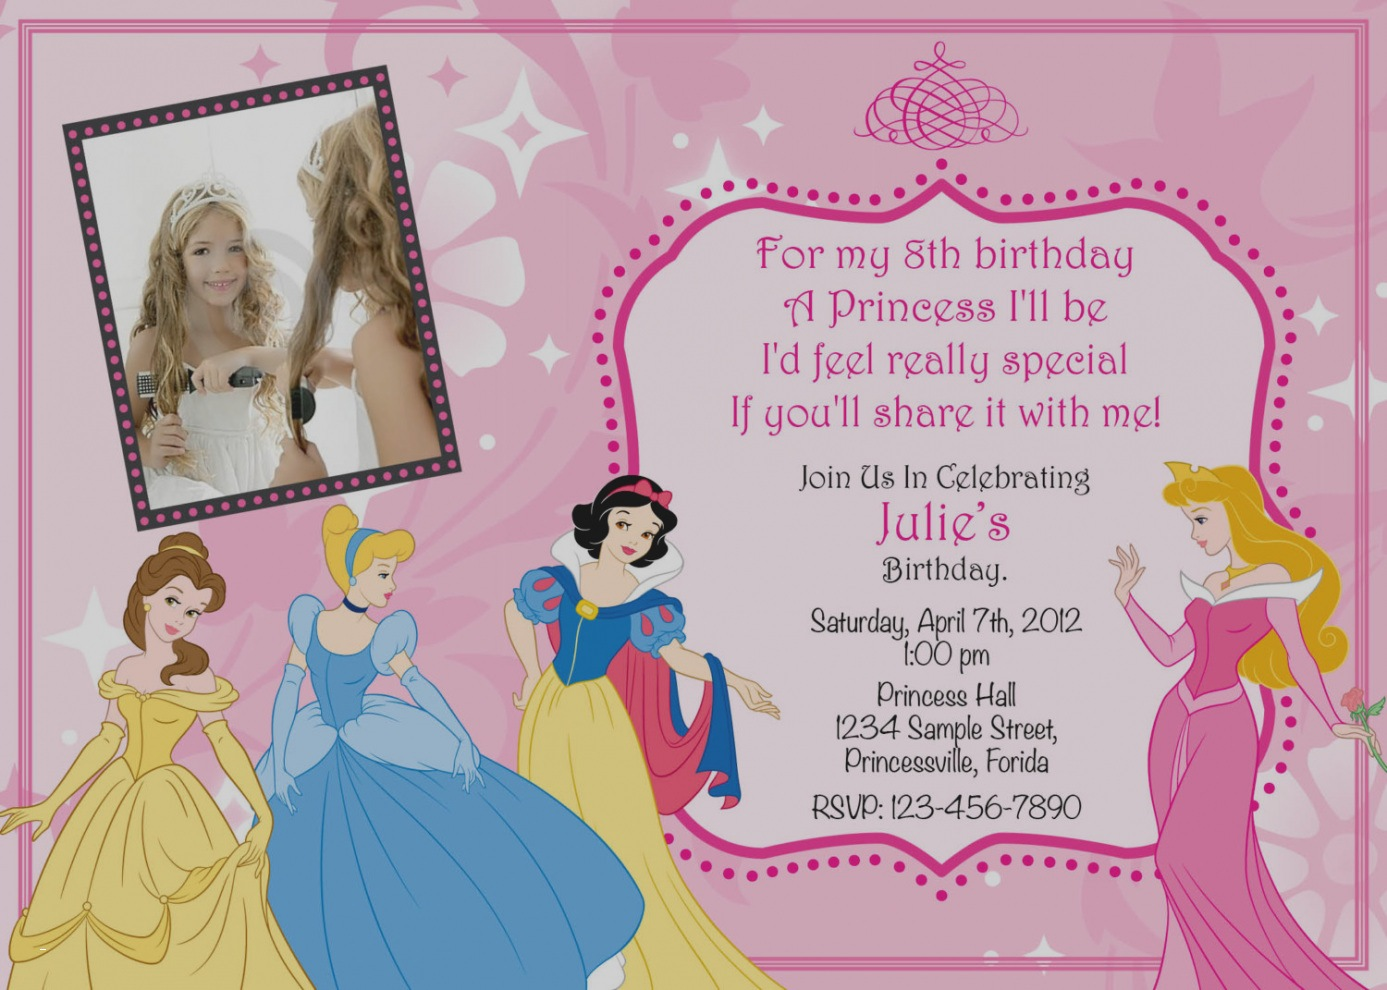 princess birthday template ; princess-birthday-party-invitations-template-elegant-gallery-8th-birthday-invitation-templates-party-invitations-of-princess-birthday-party-invitations-template